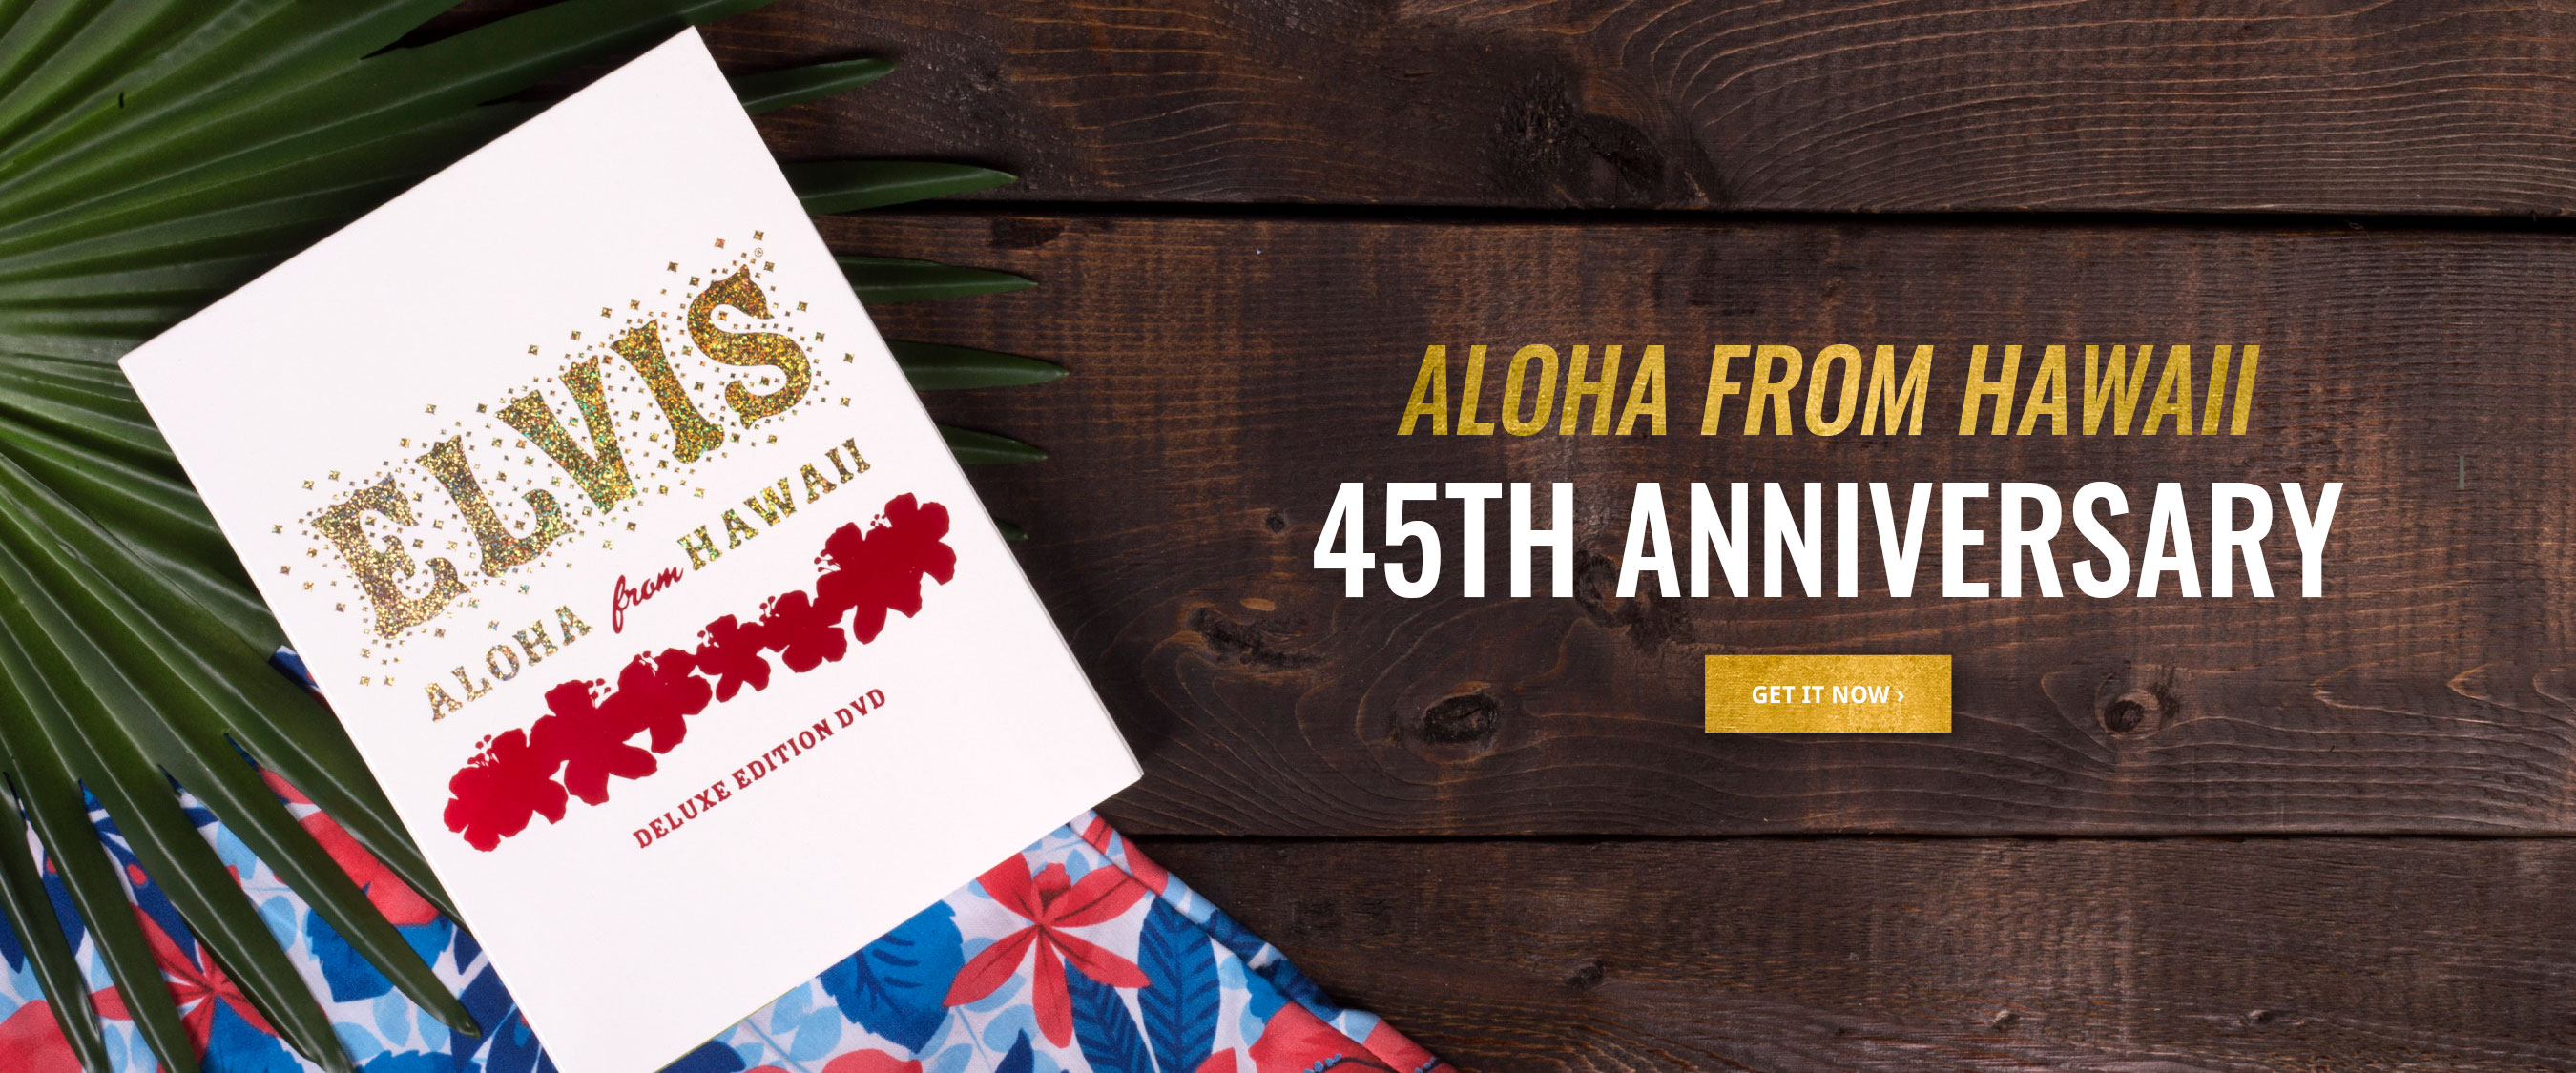 Celebrate the 45th anniversary of Aloha from Hawaii!